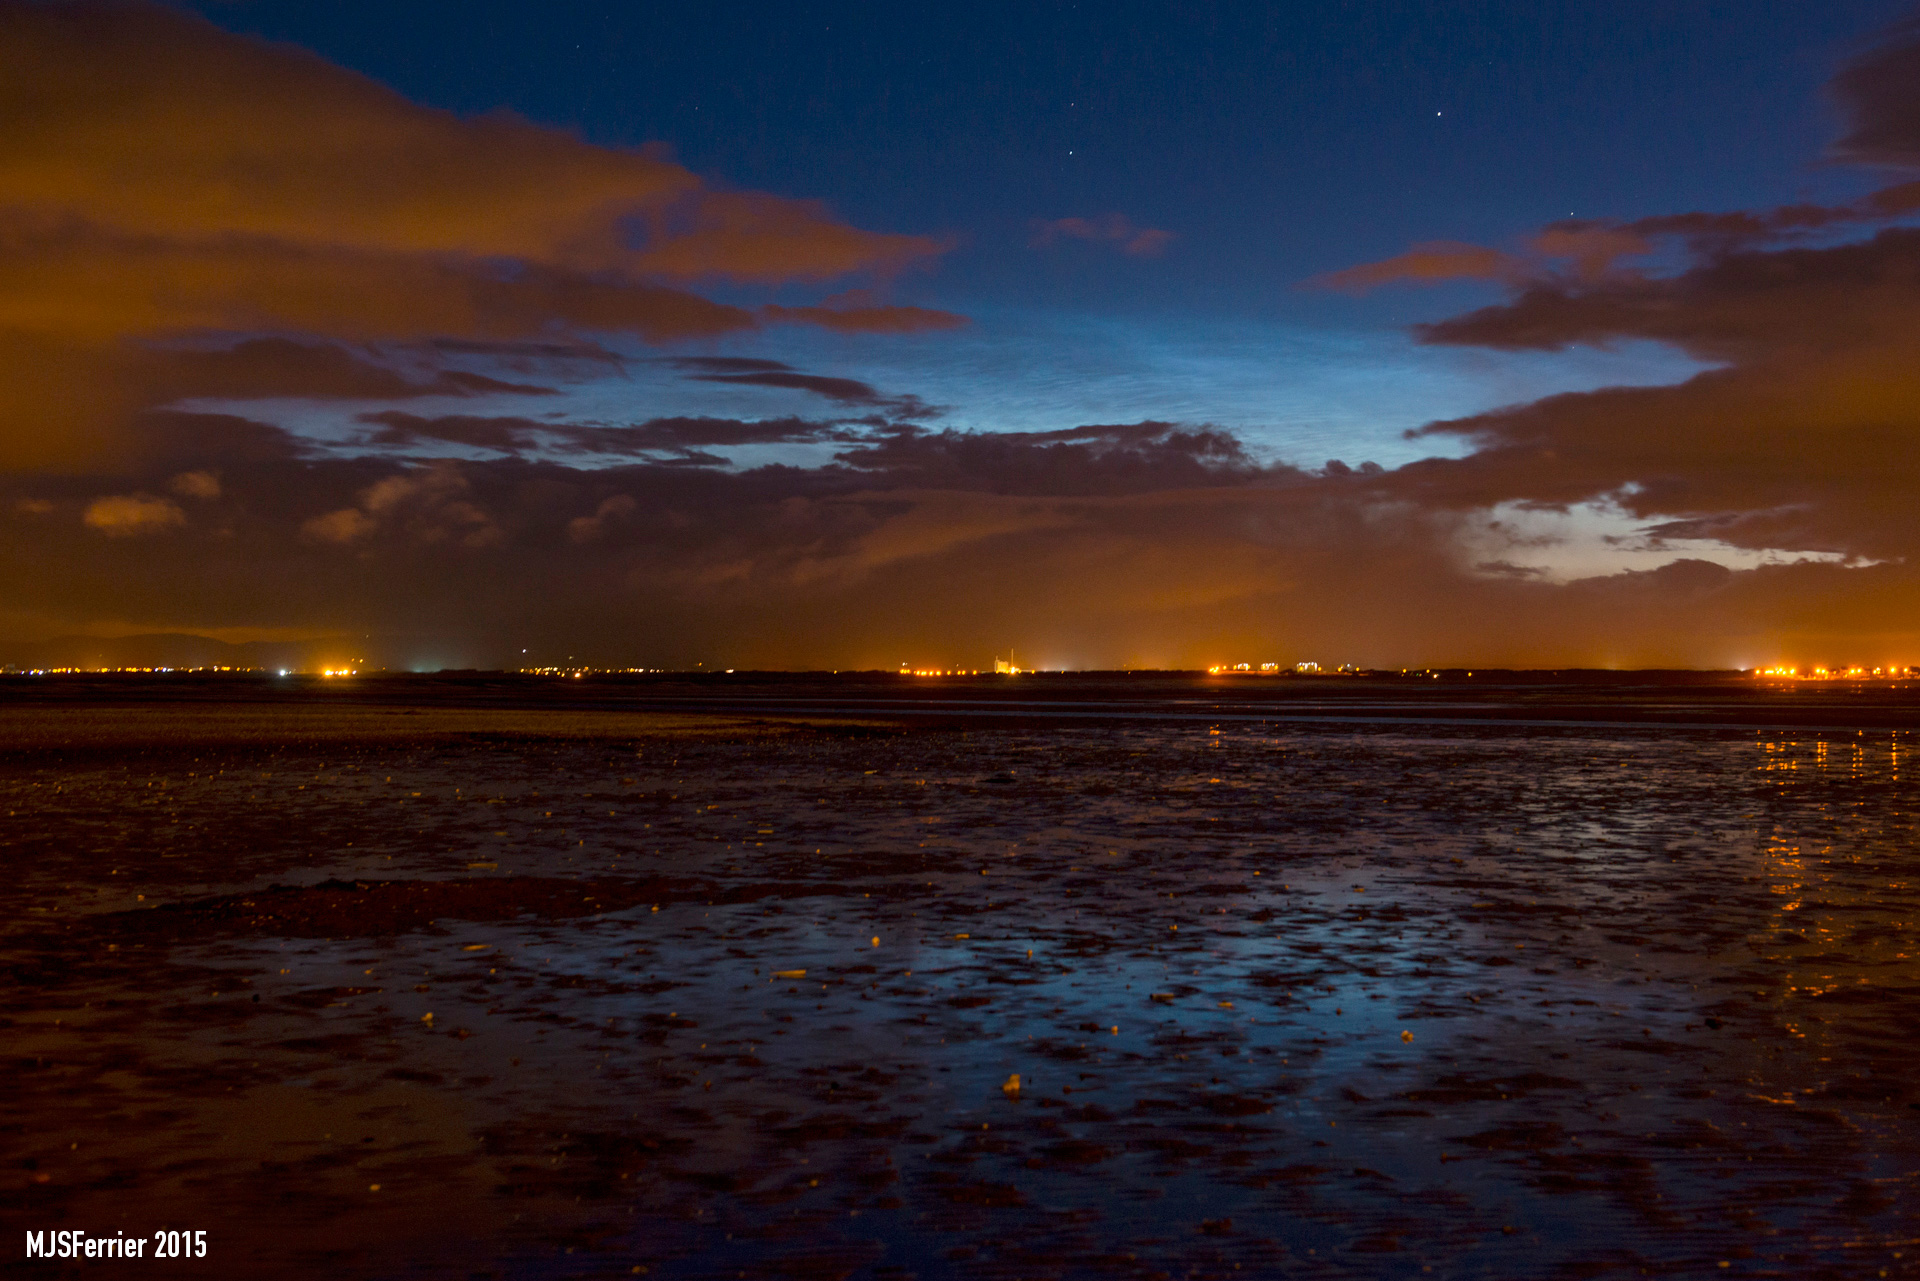 noctilucent-clouds-barassie-beach-mjsferrier-800_0471.jpg